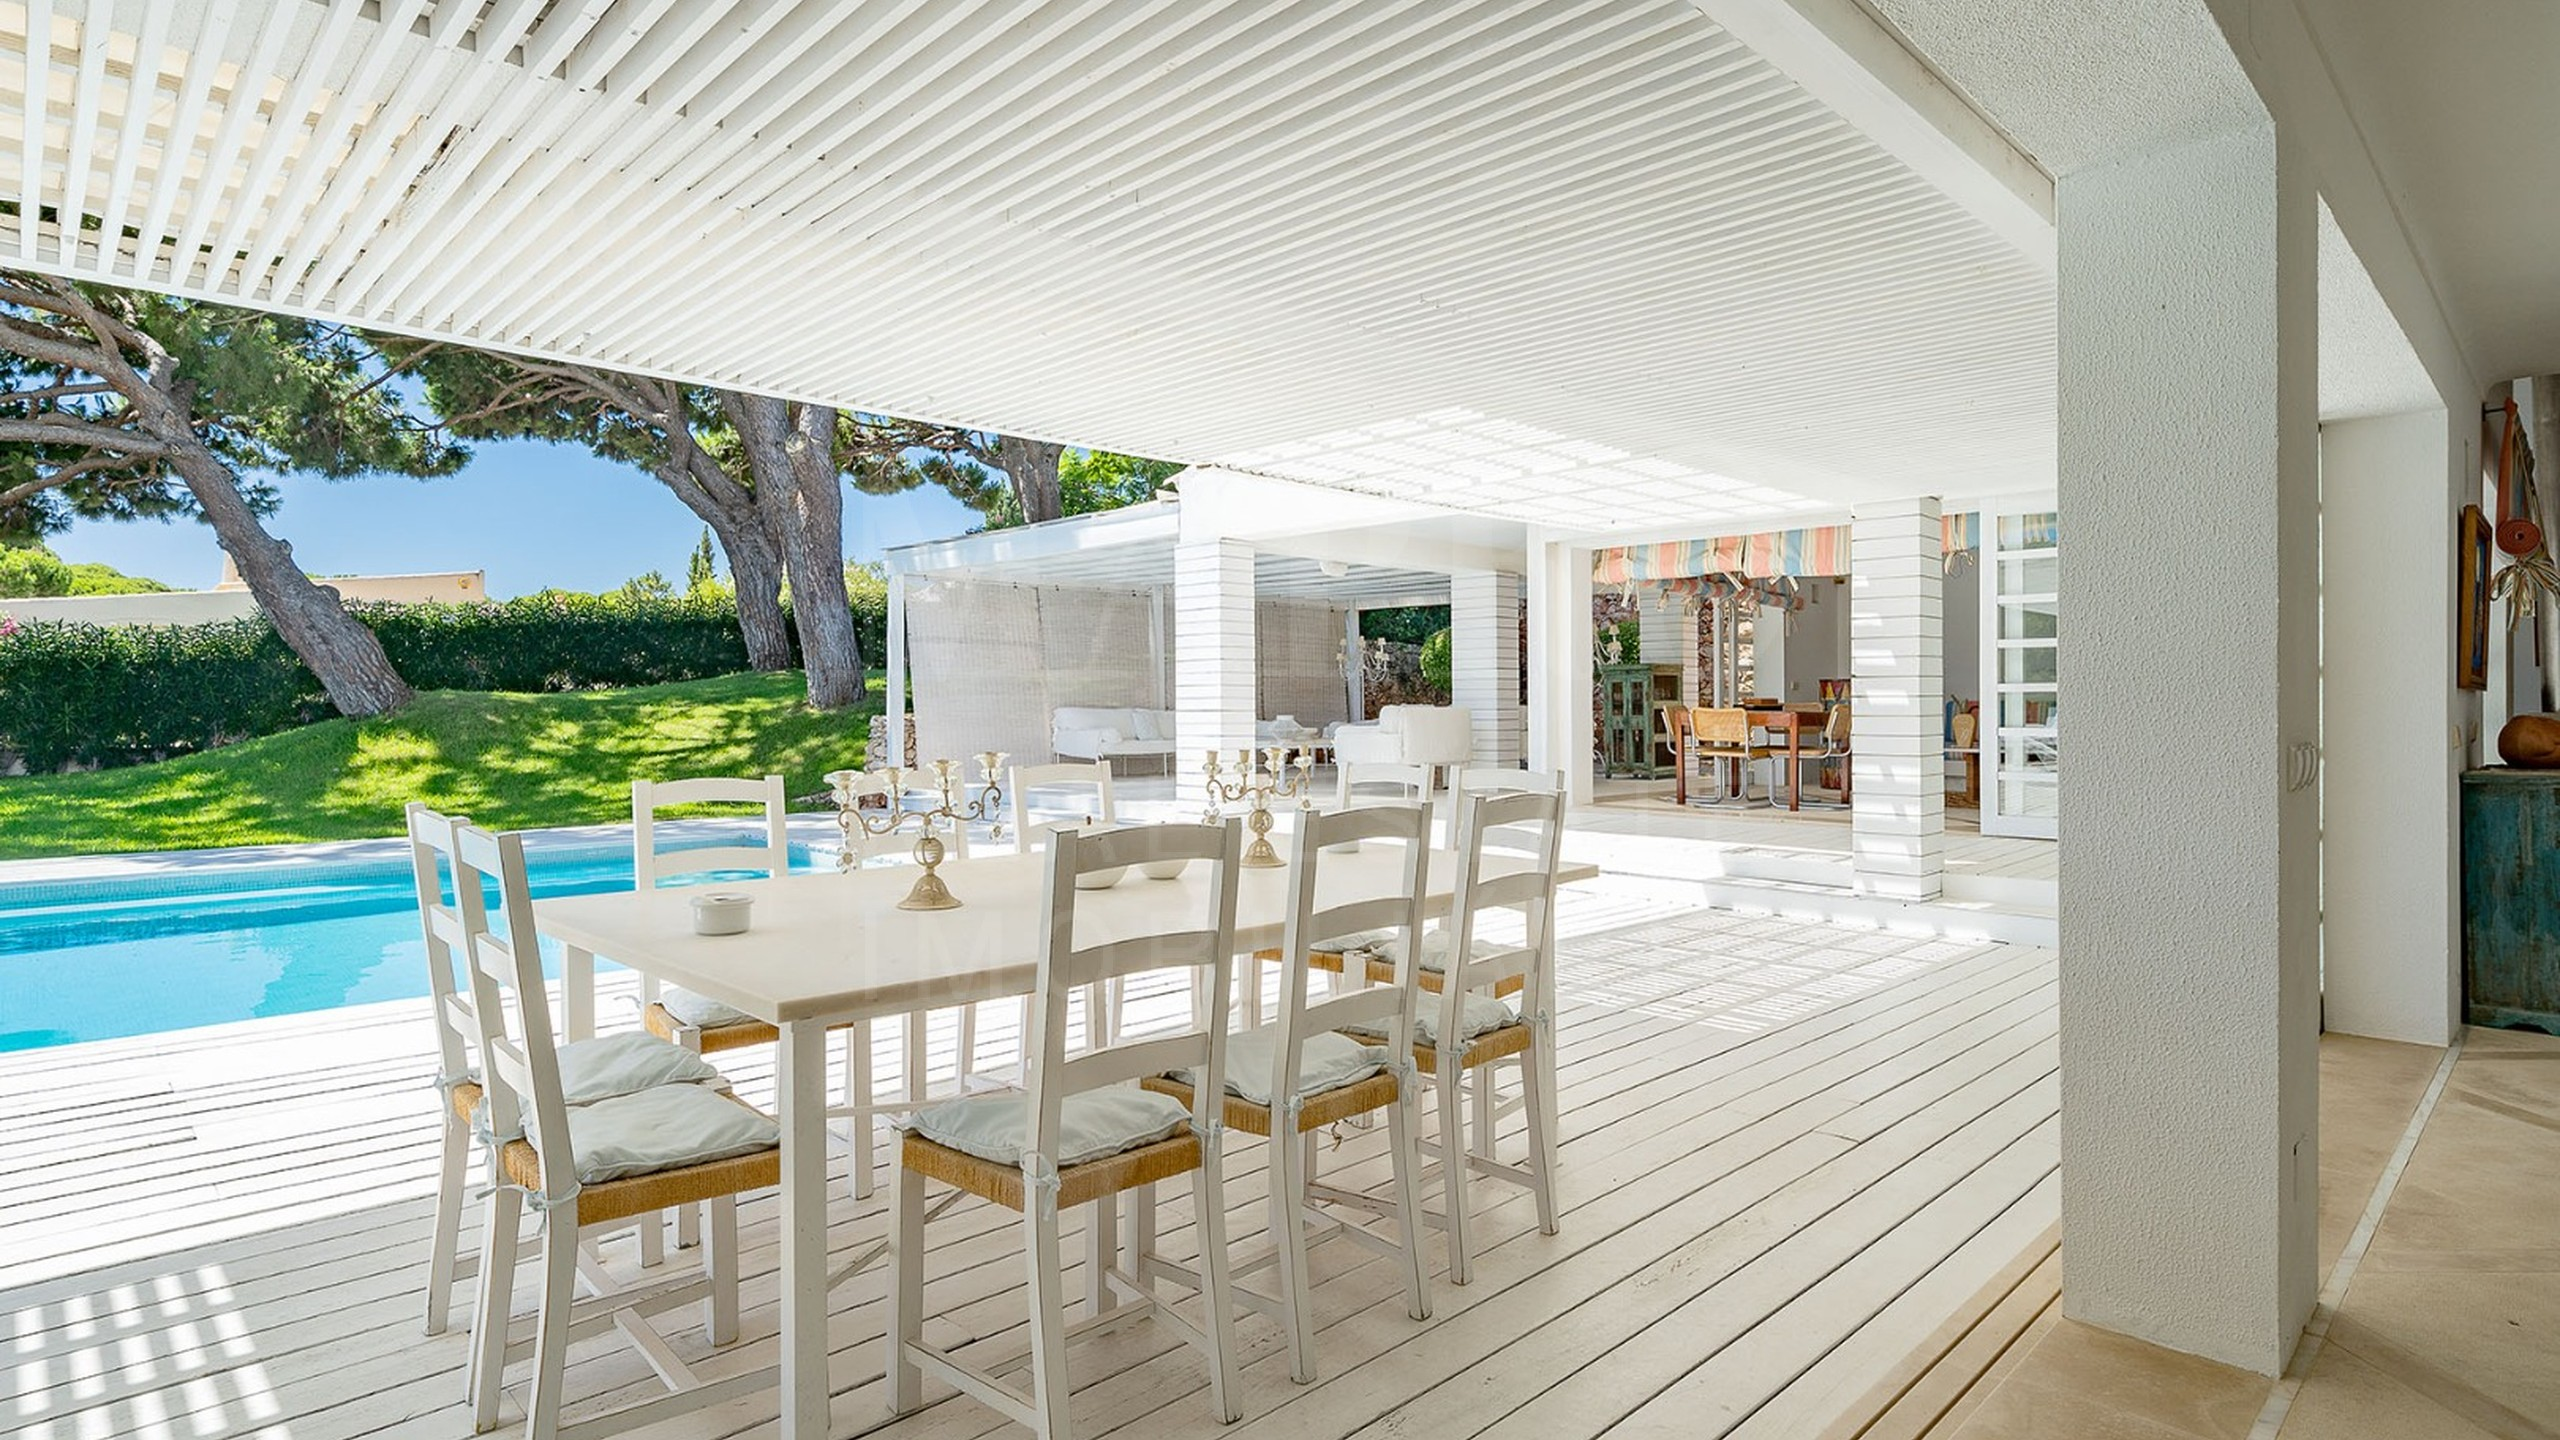 Terrace by the pool